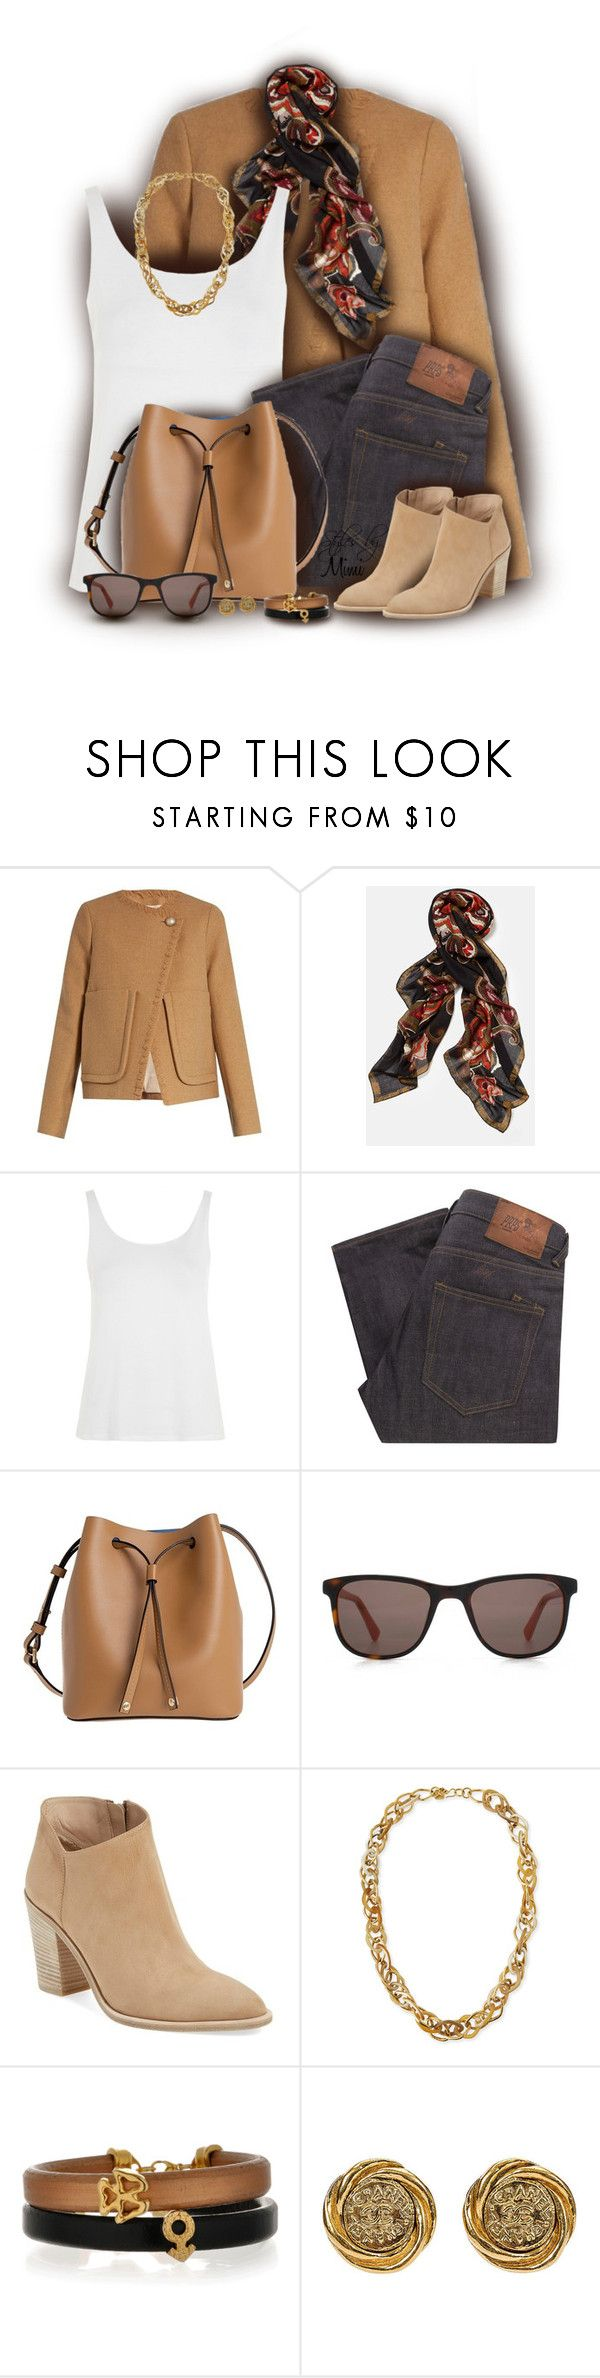 """Falling for Neutrals (12.3.16)"" by stylesbymimi ❤ liked on Polyvore featuring See by Chloé, Lafayette 148 New York, Topshop, PRPS, Lodis, HOOK LDN, Vince and Ashley Pittman"